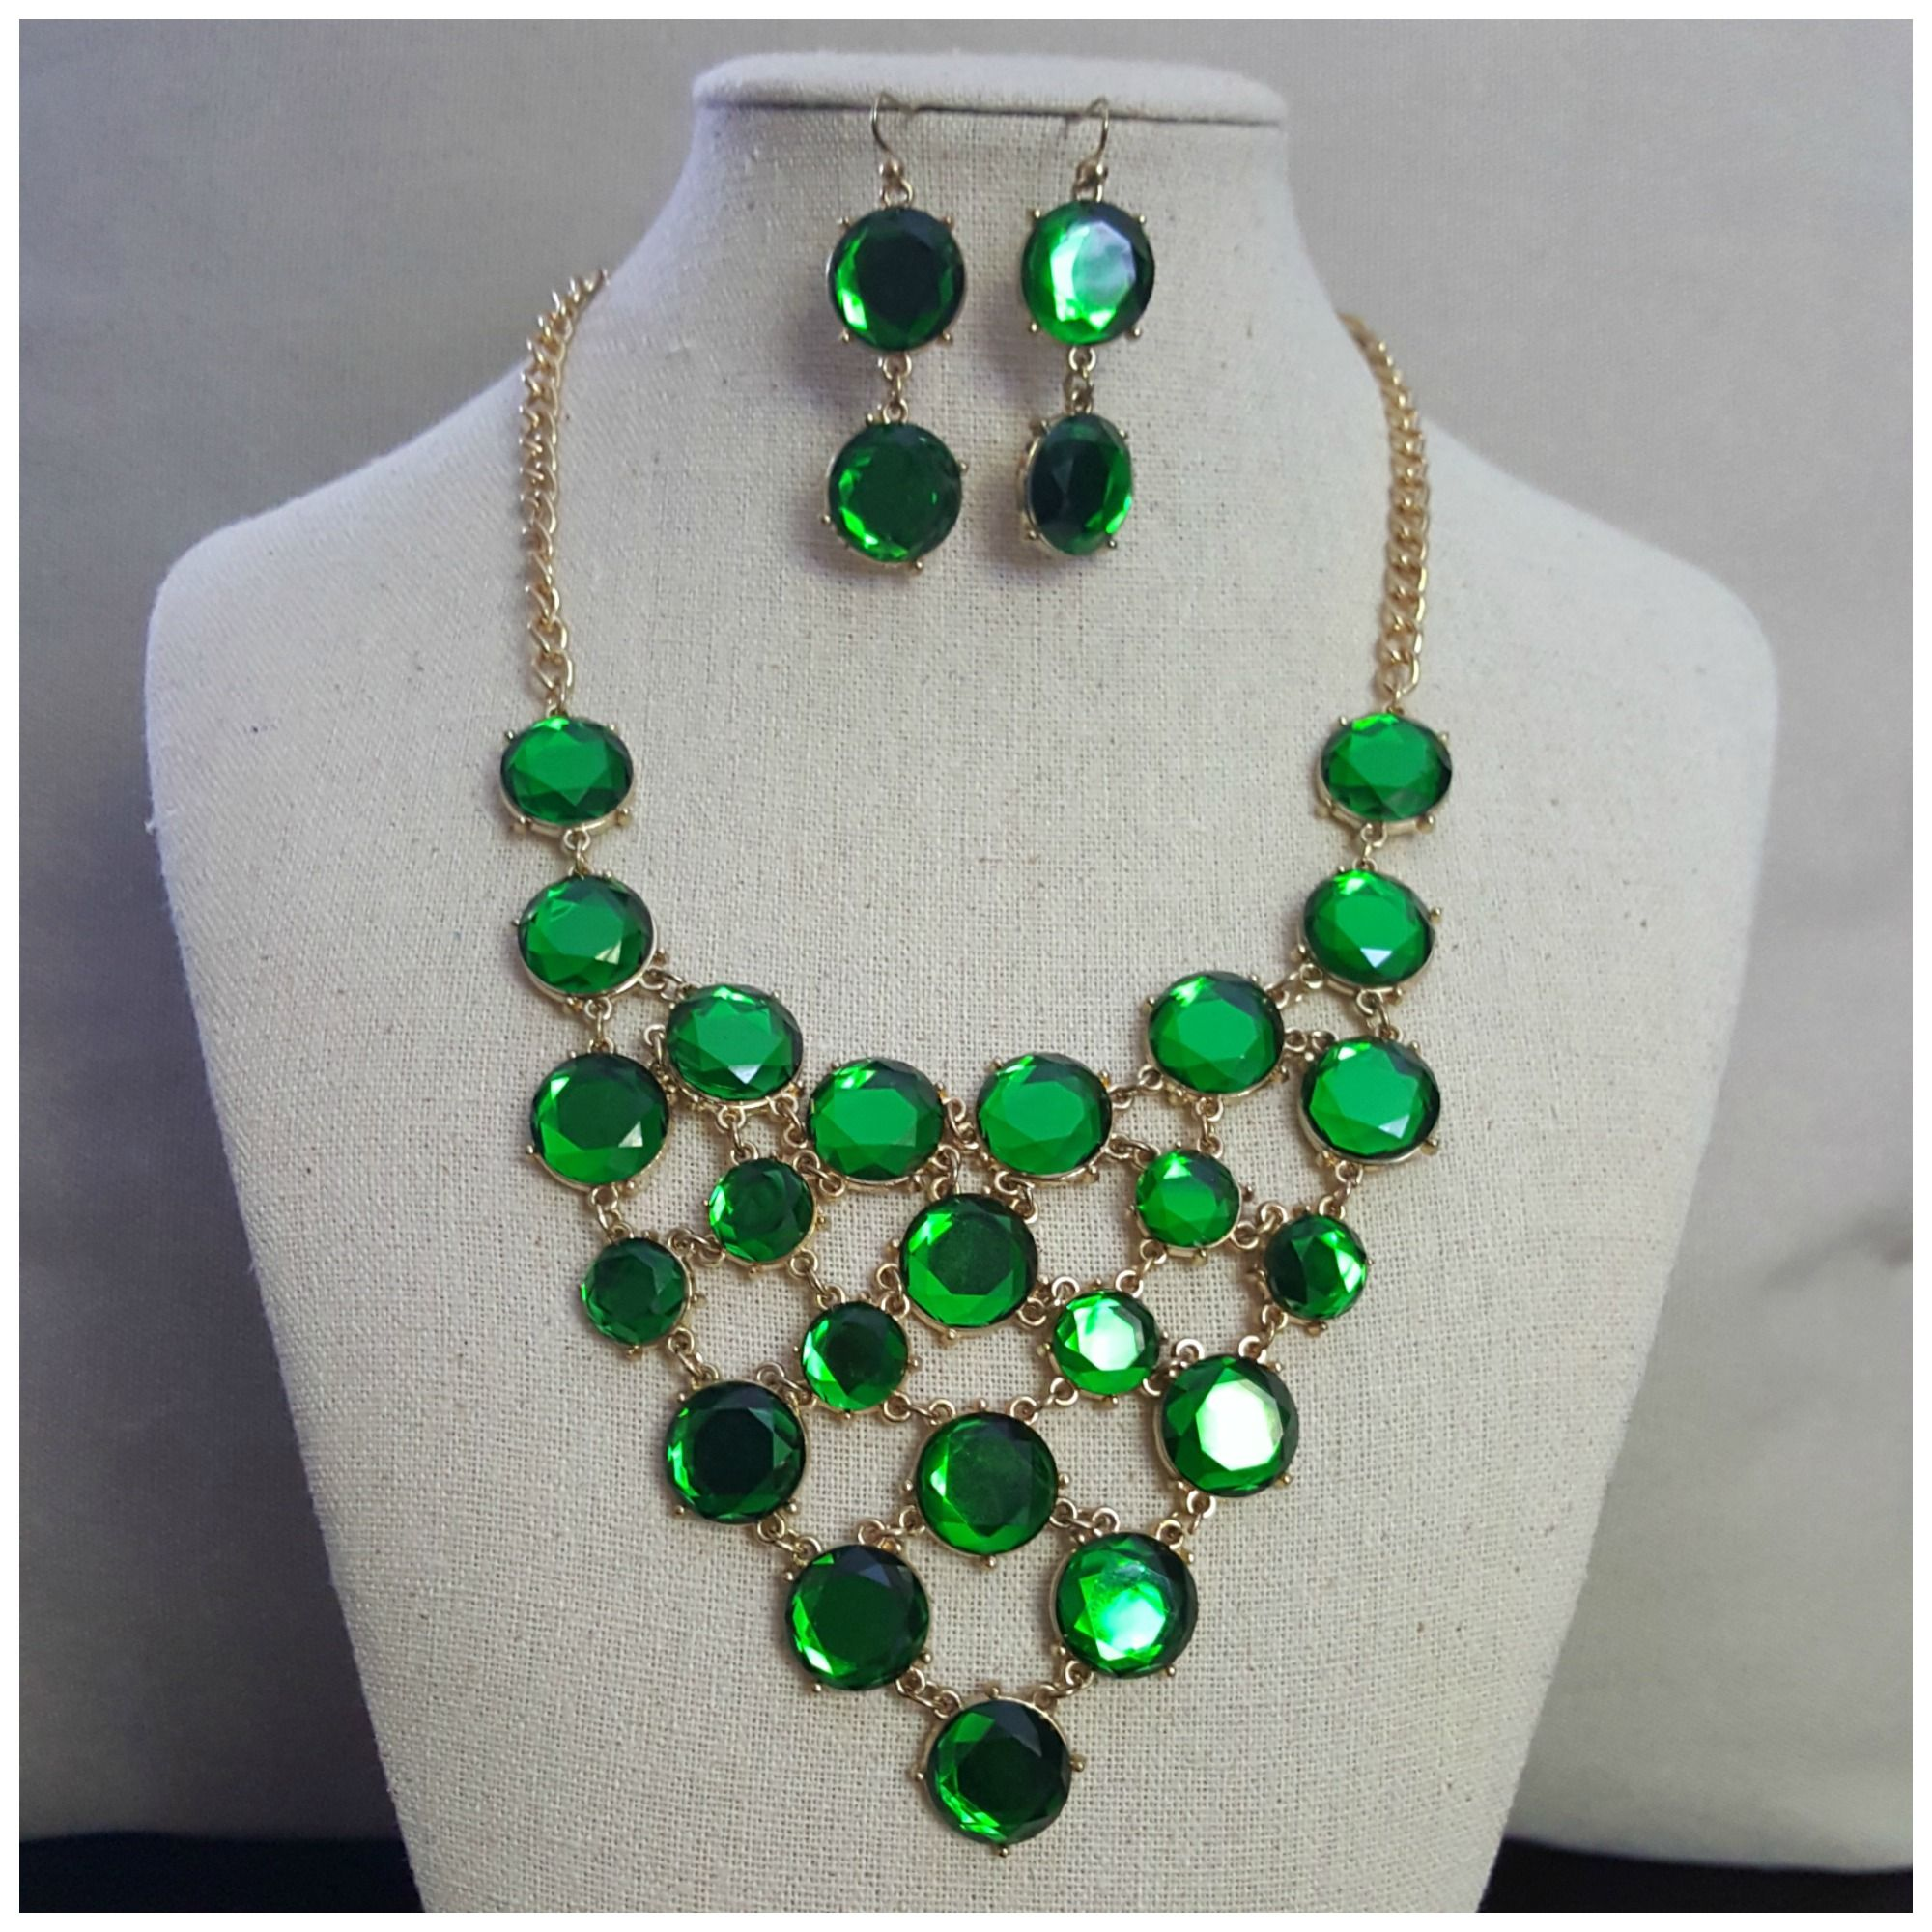 Vintage gold tone necklace and earring set with emerald gemstone